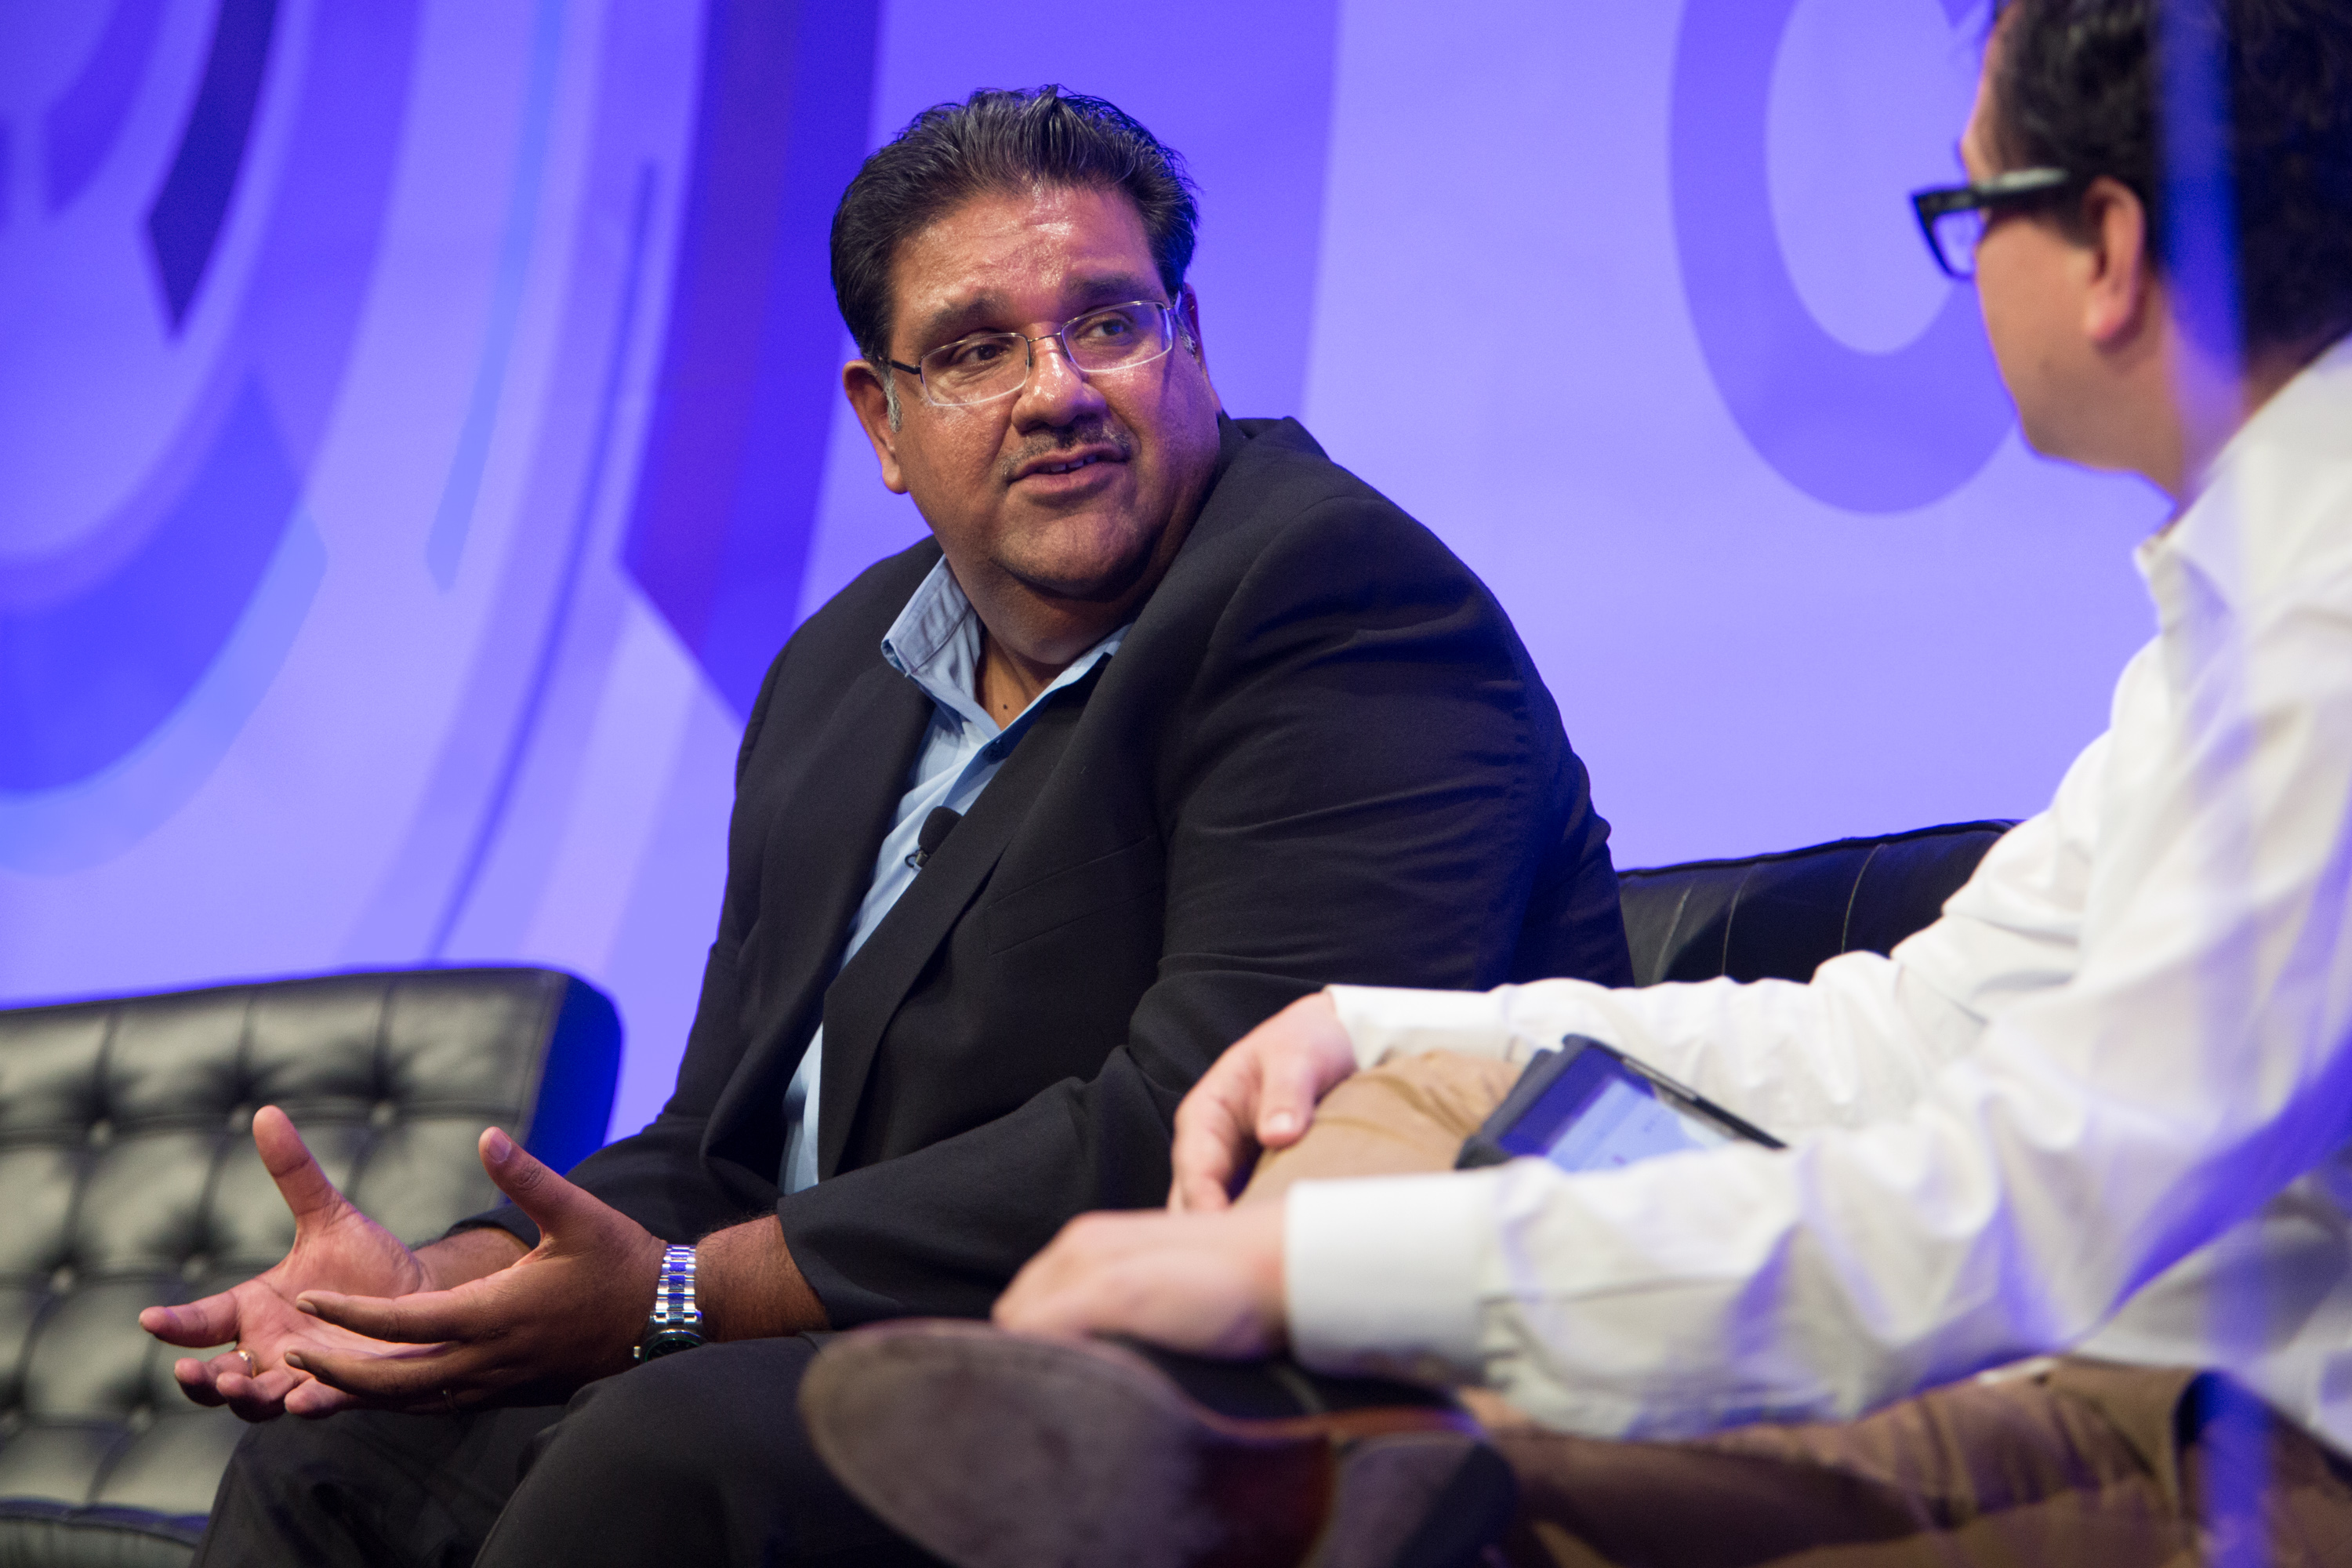 Murthy Renduchintala — EVP, Qualcomm Technologies and Co-President, Qualcomm CDMA Technologies (QCT), Qualcomm